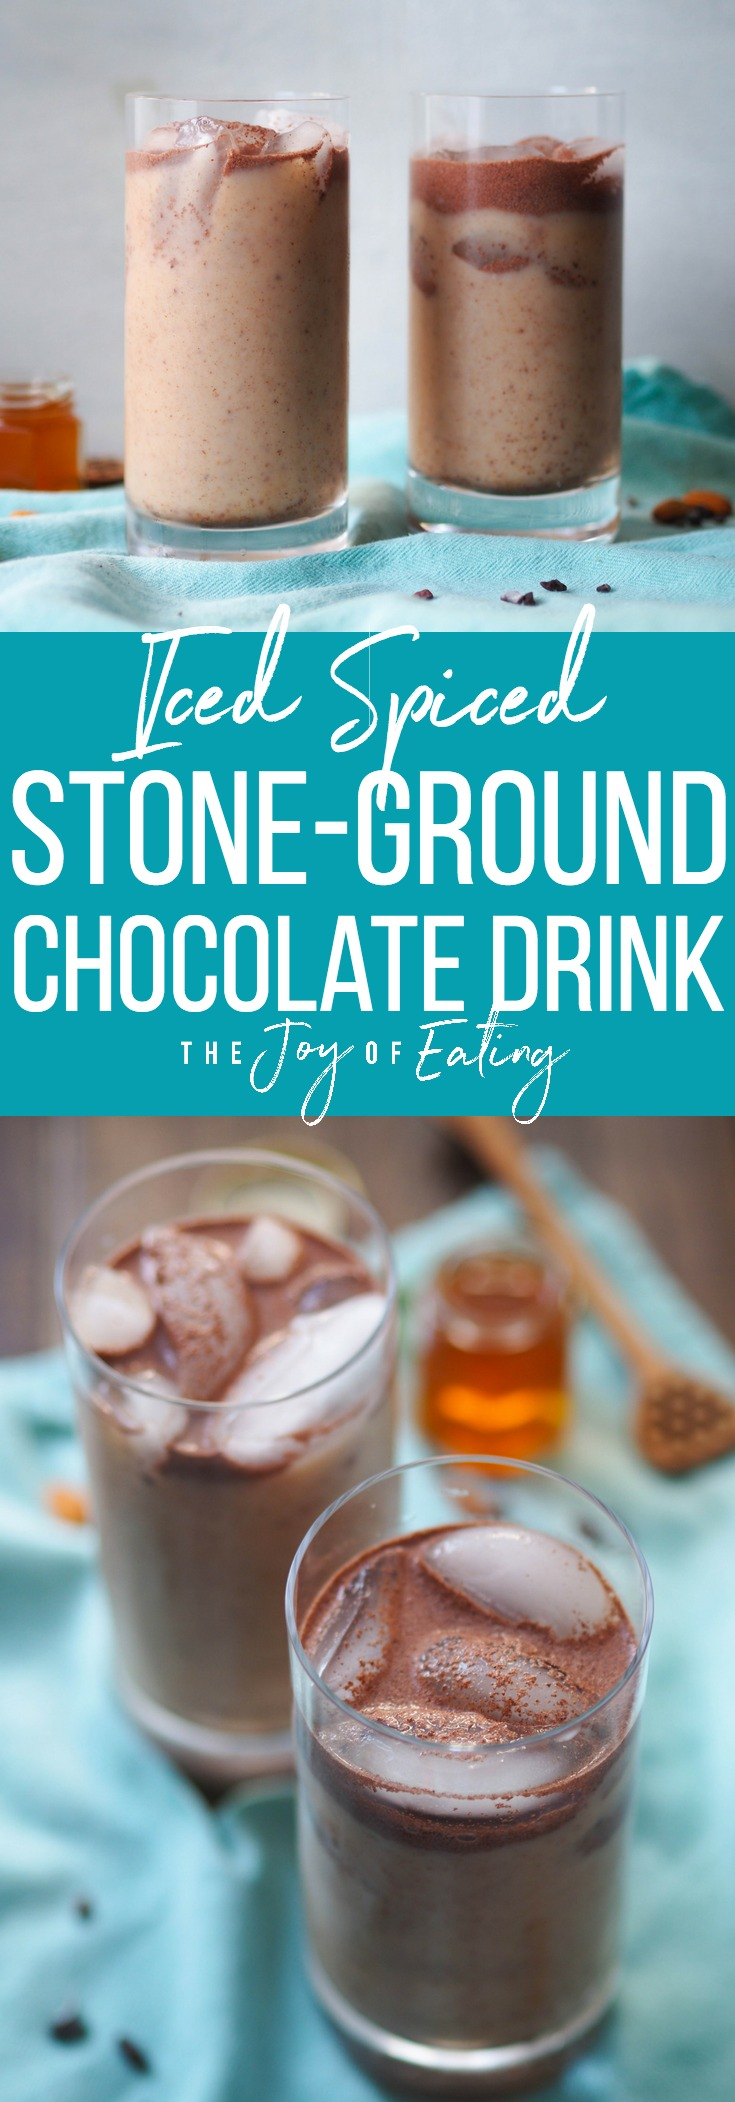 This iced spiced stone ground chocolate drink is the most refreshing drink you'll have this summer! Spiced with chili, vanilla, almond and cinnamon! #chocolate #drink #beverage #vegan